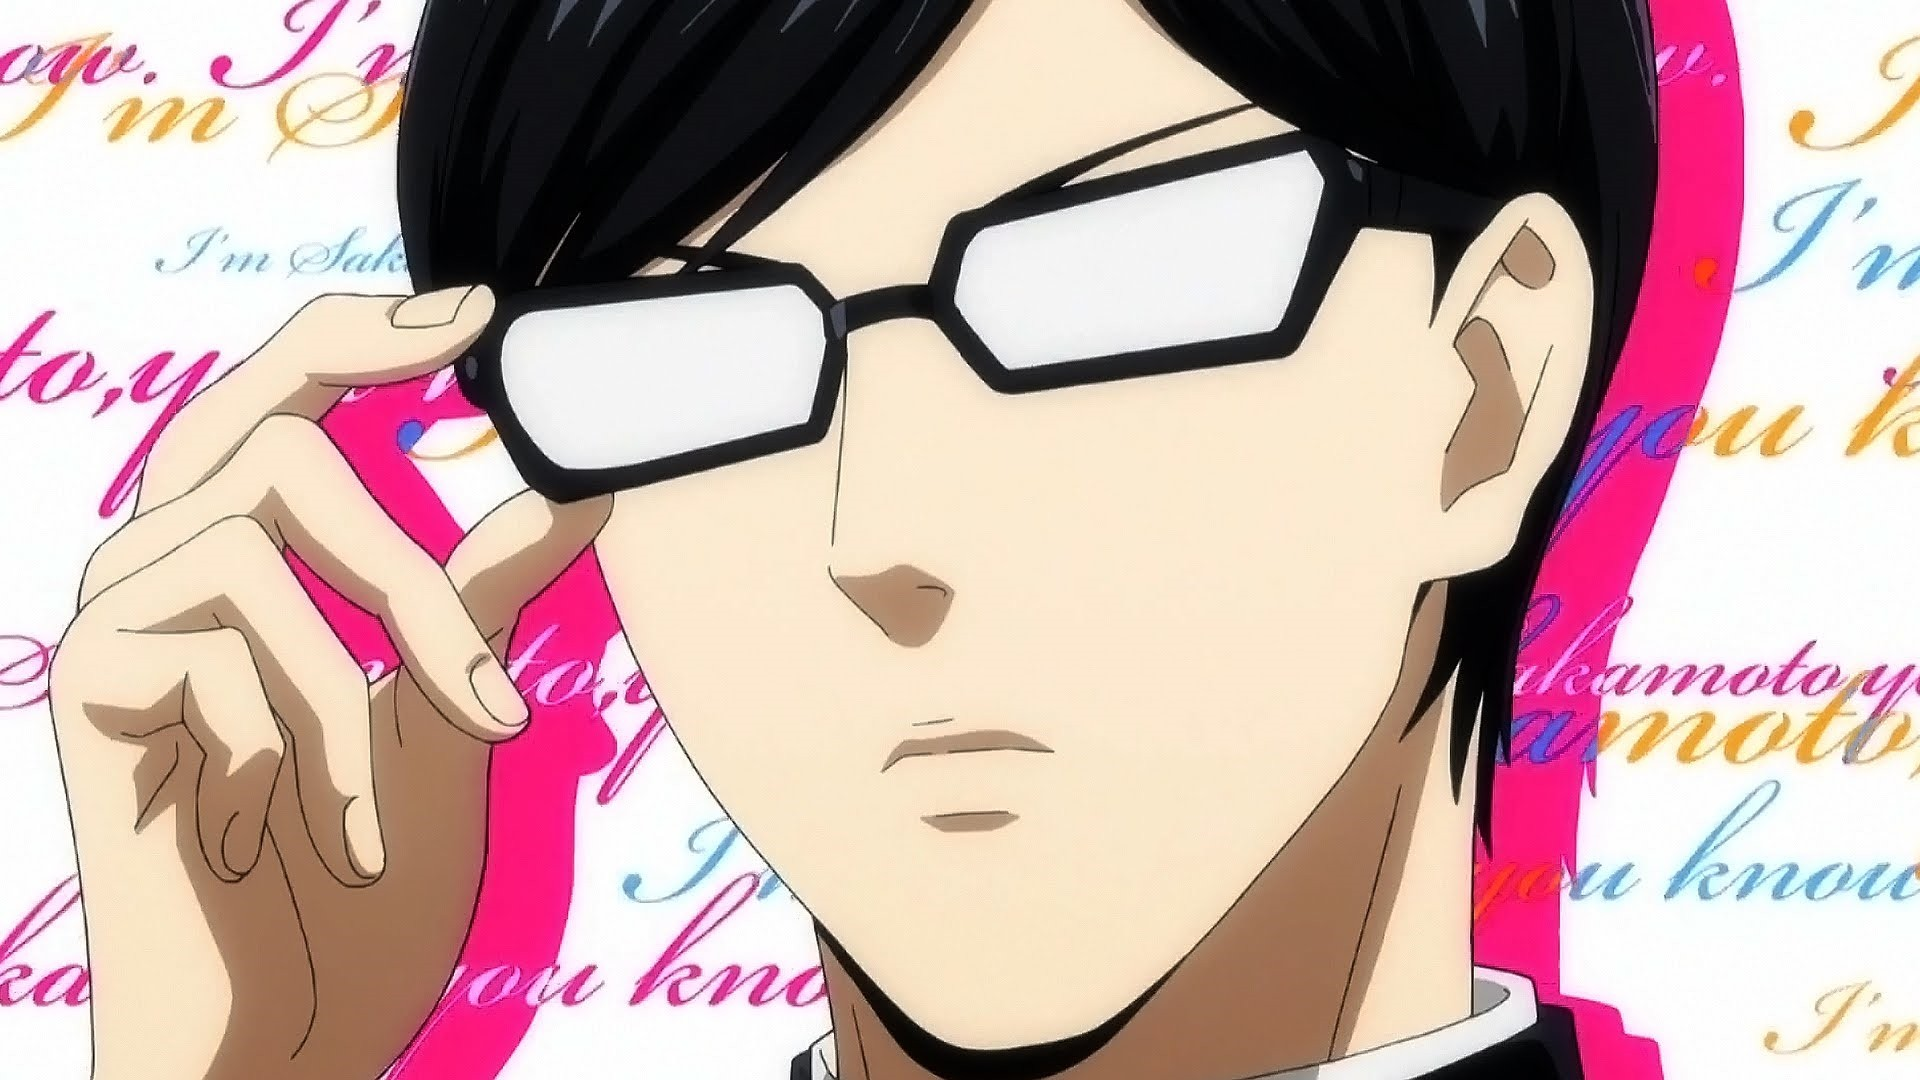 Anime Guy With Glasses Wallpaper image hd